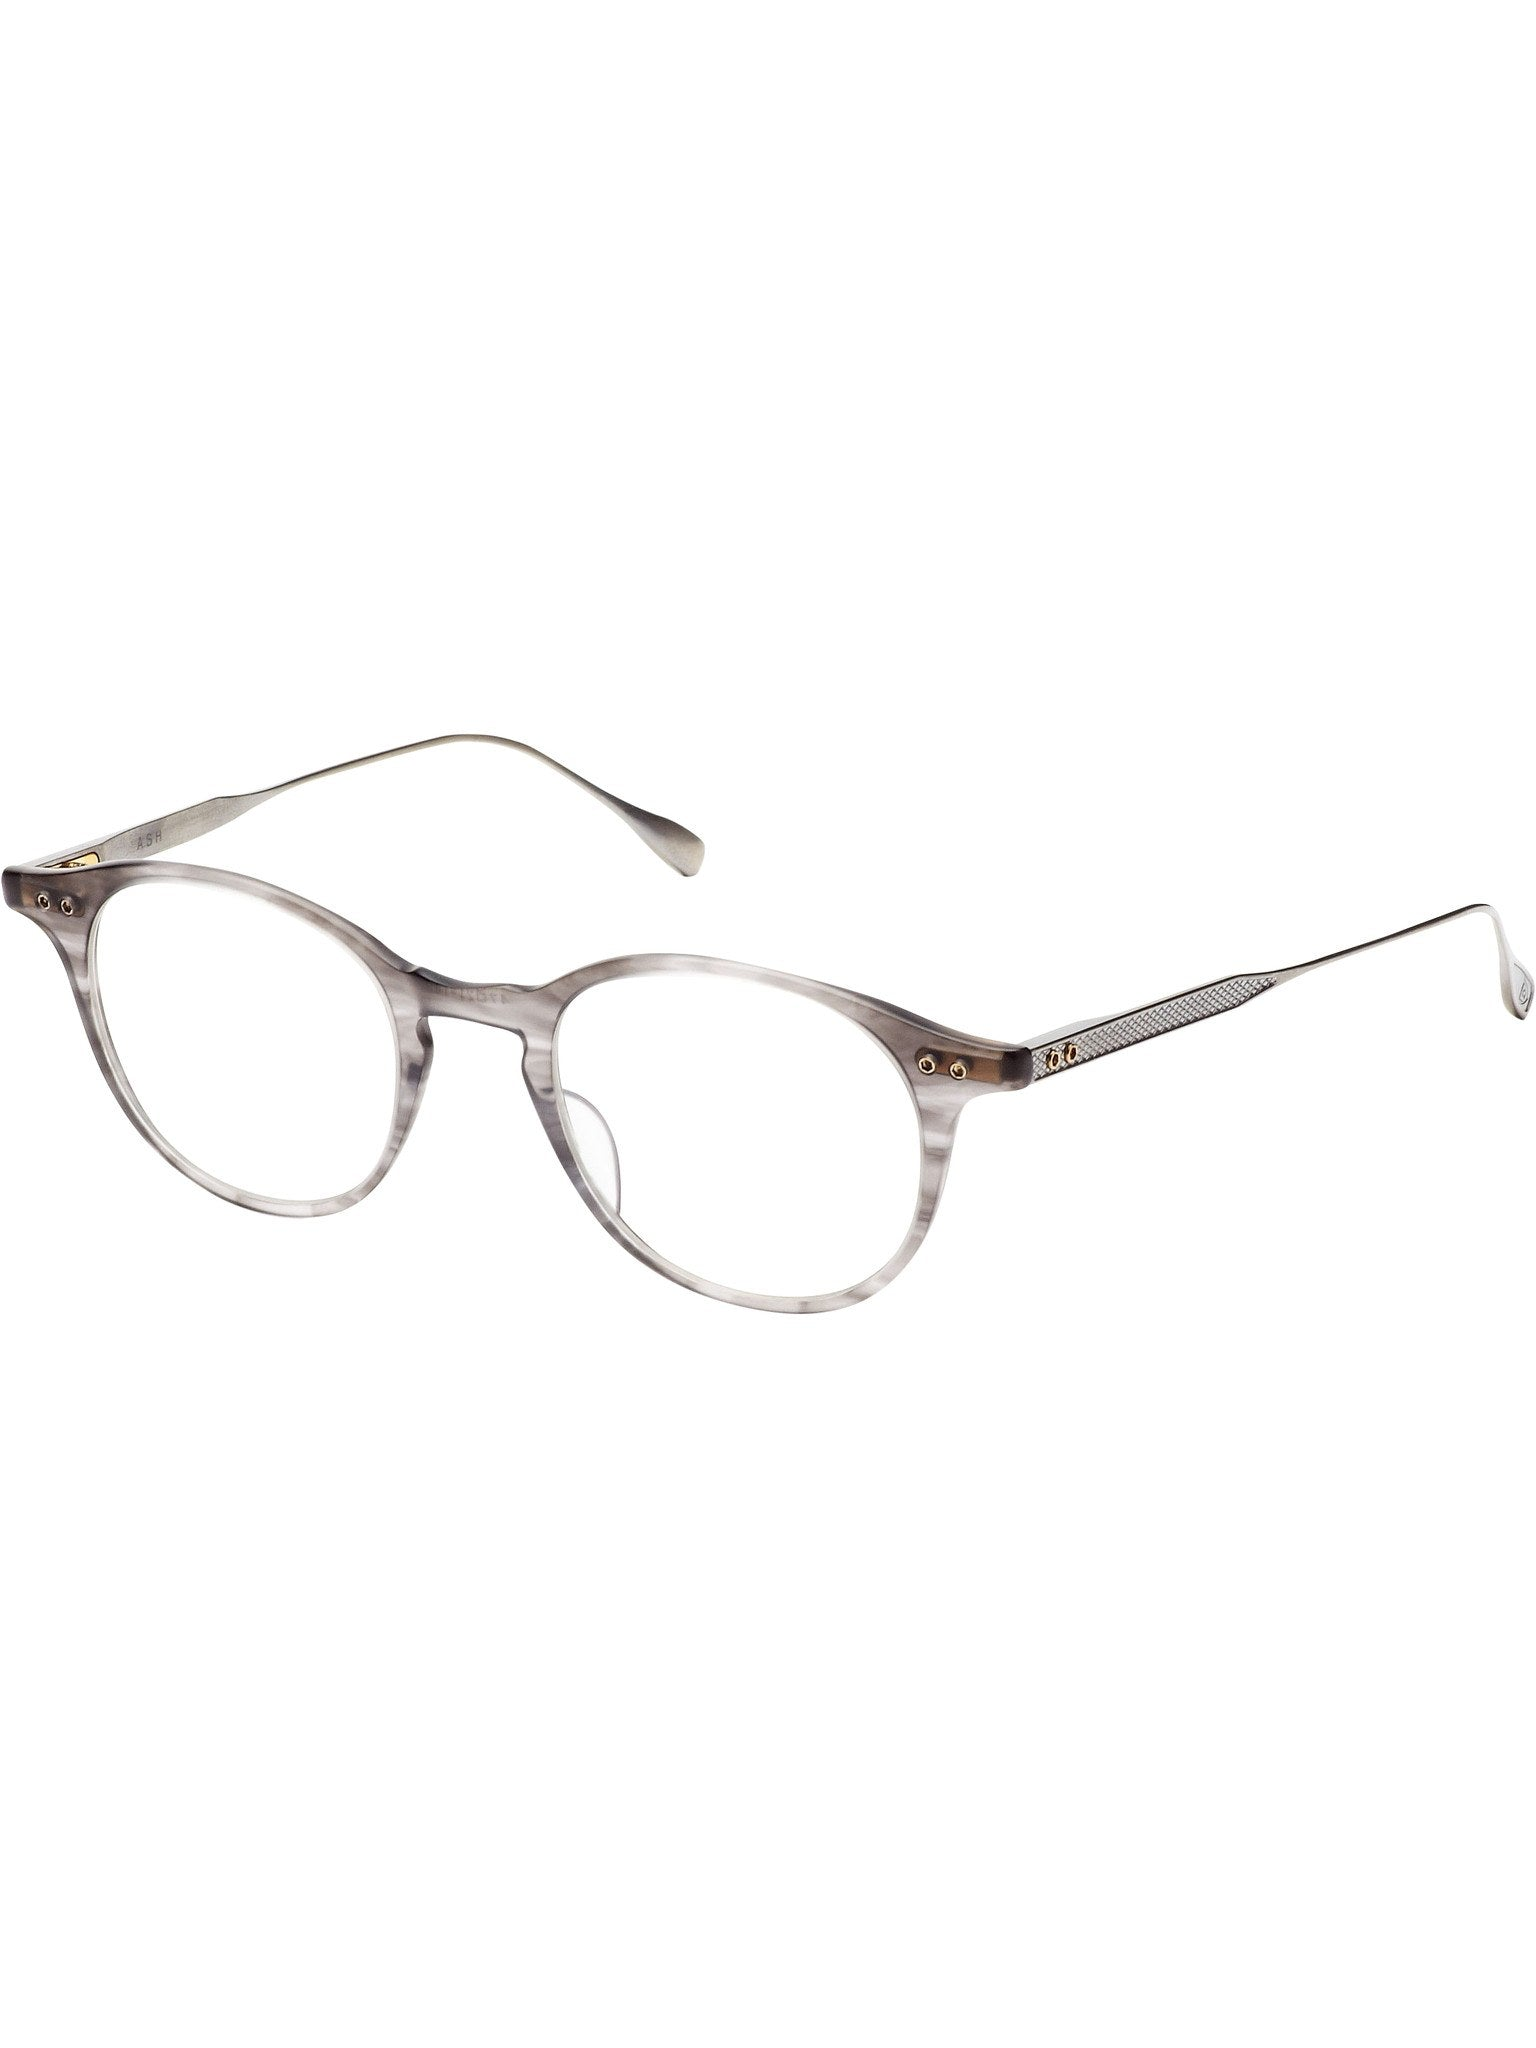 8e0a787607d Optical Frame - Dita Ash DRX-2073-C Glasses